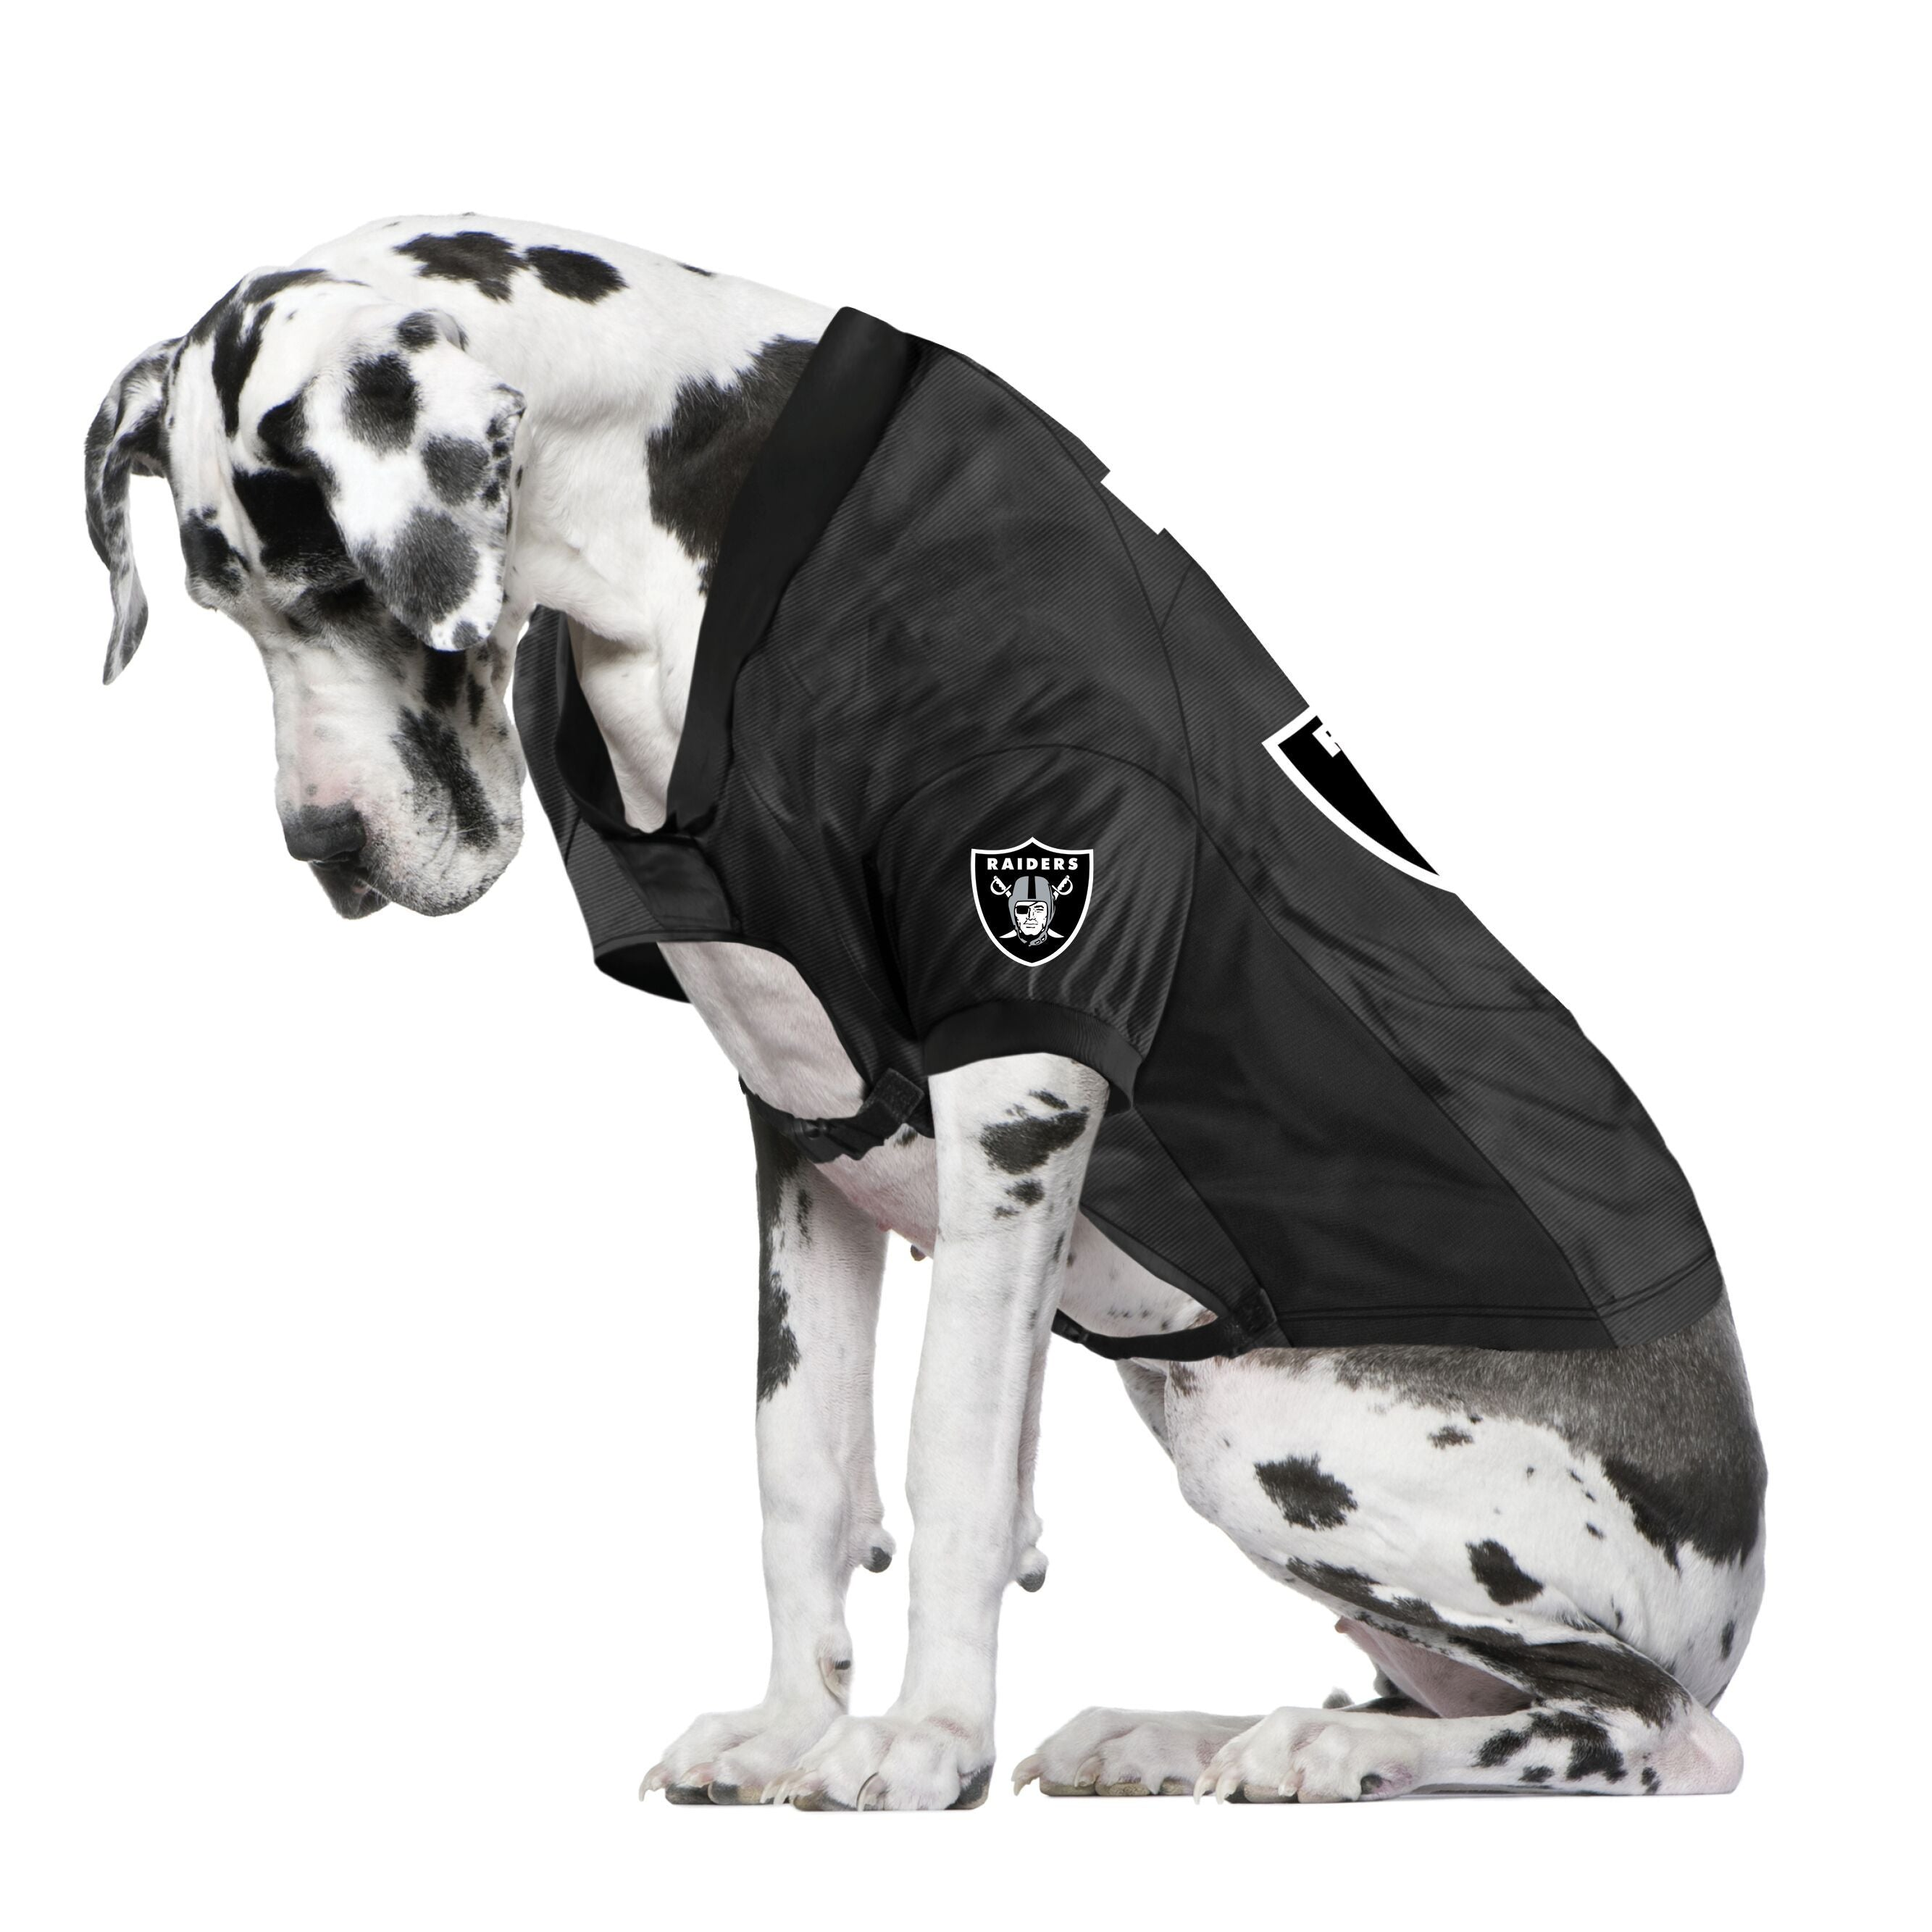 Raiders Fan Jersey For Your Dog